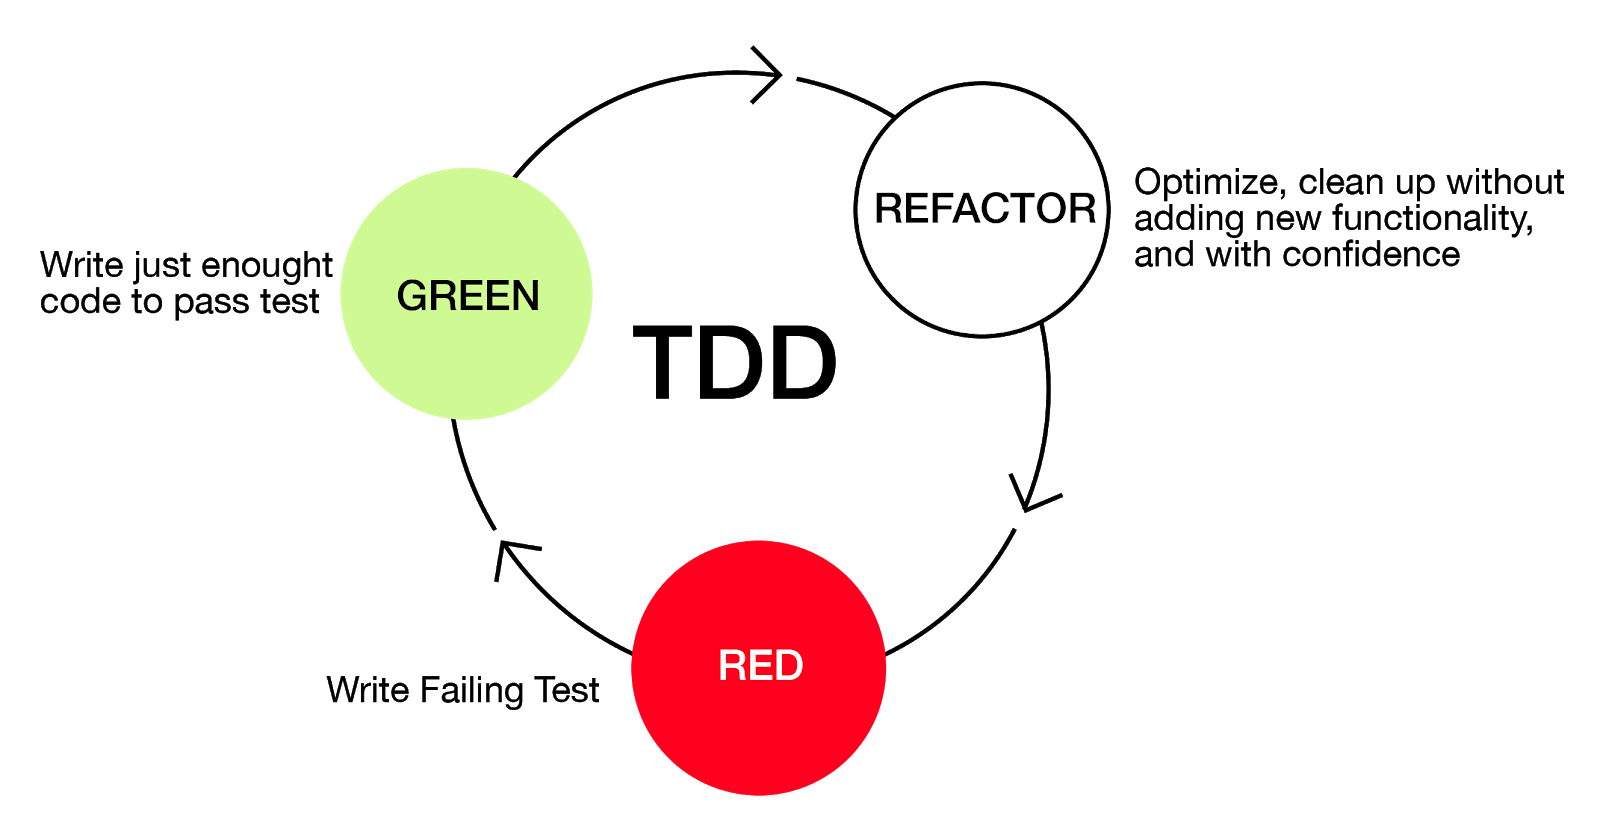 Refactoring process in Agile